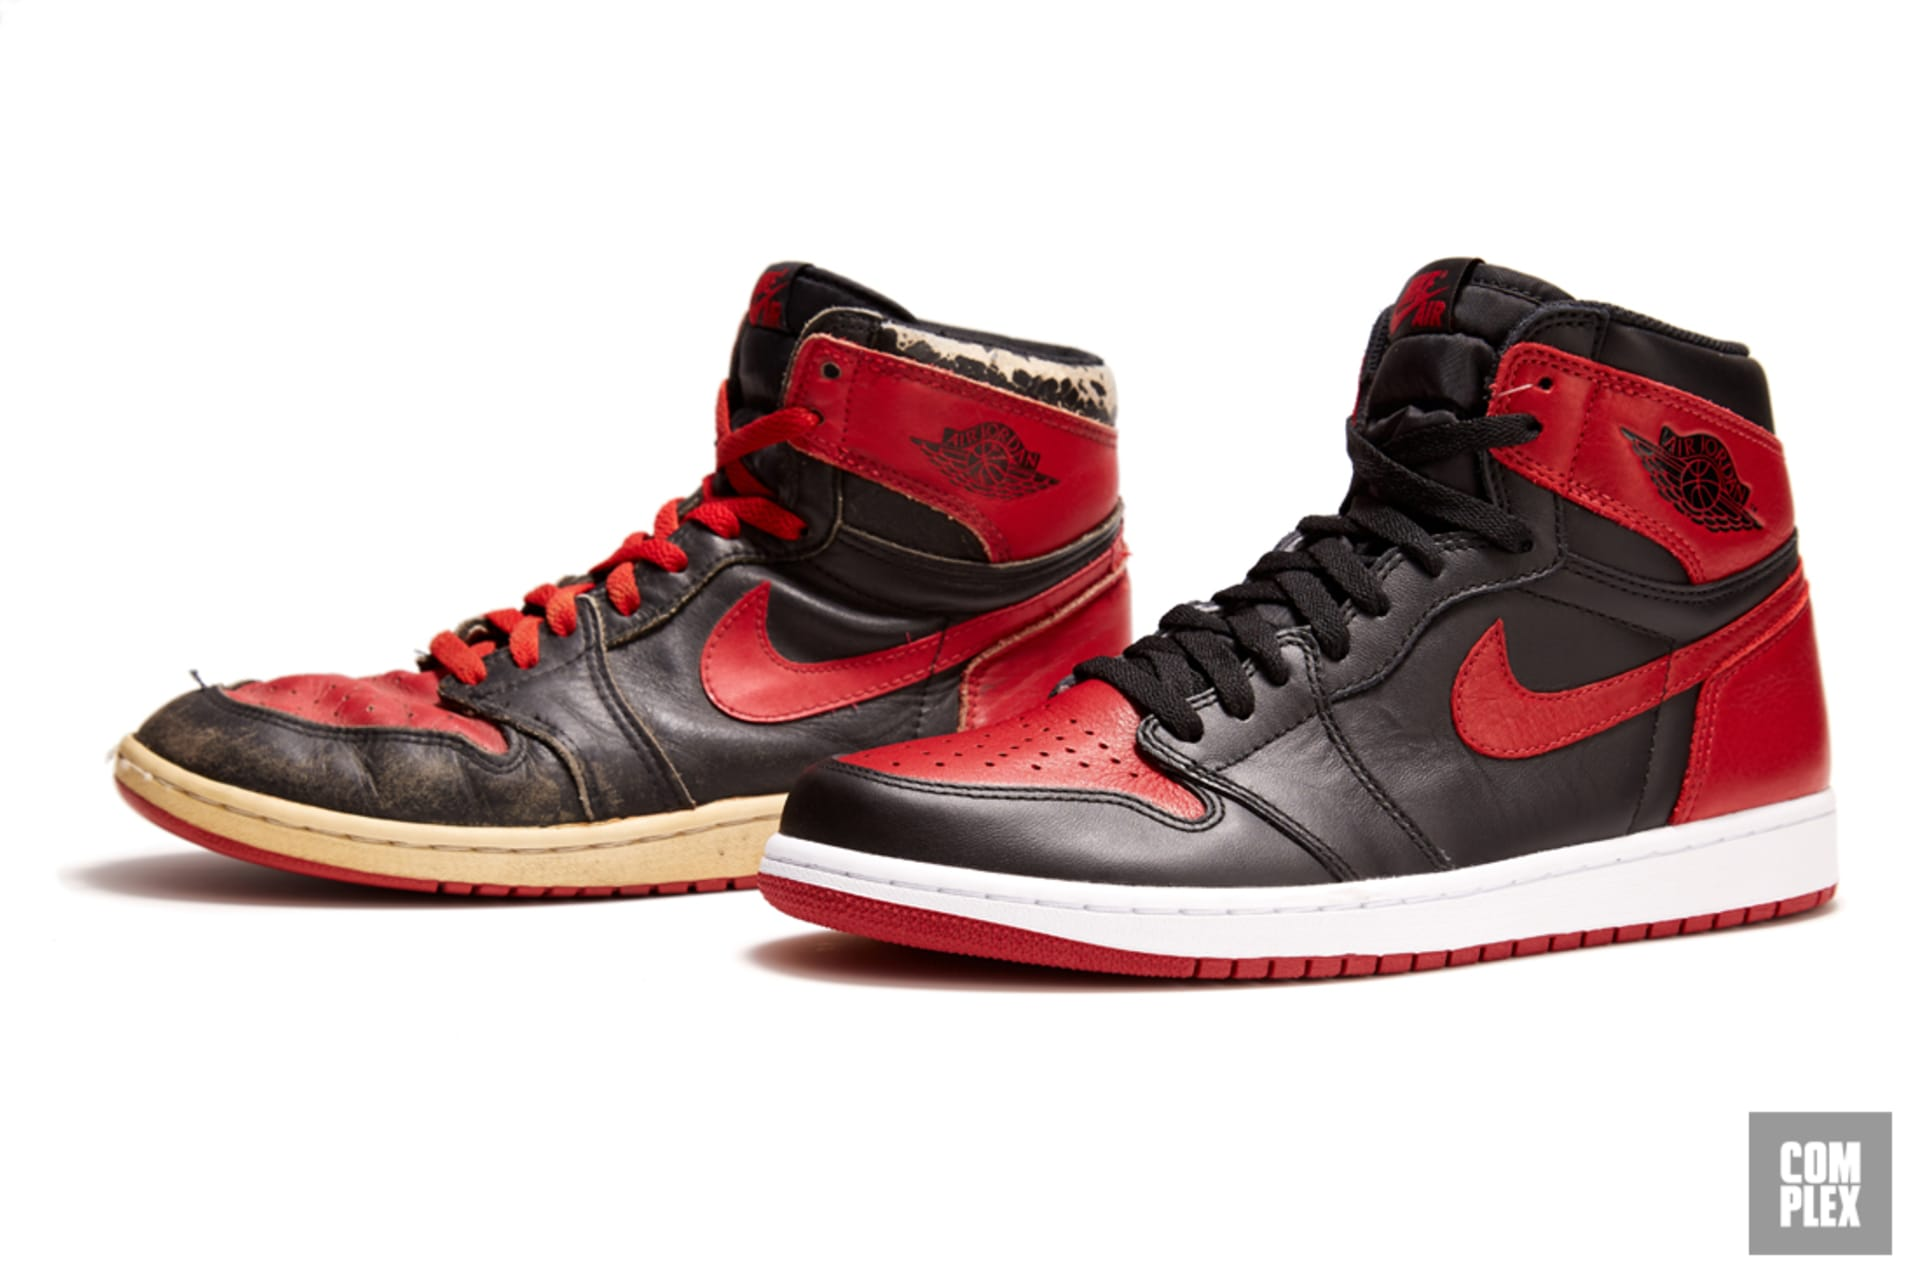 promo code 78203 8270c The Evolution of the Black and Red Air Jordan 1, the Sneaker That ...